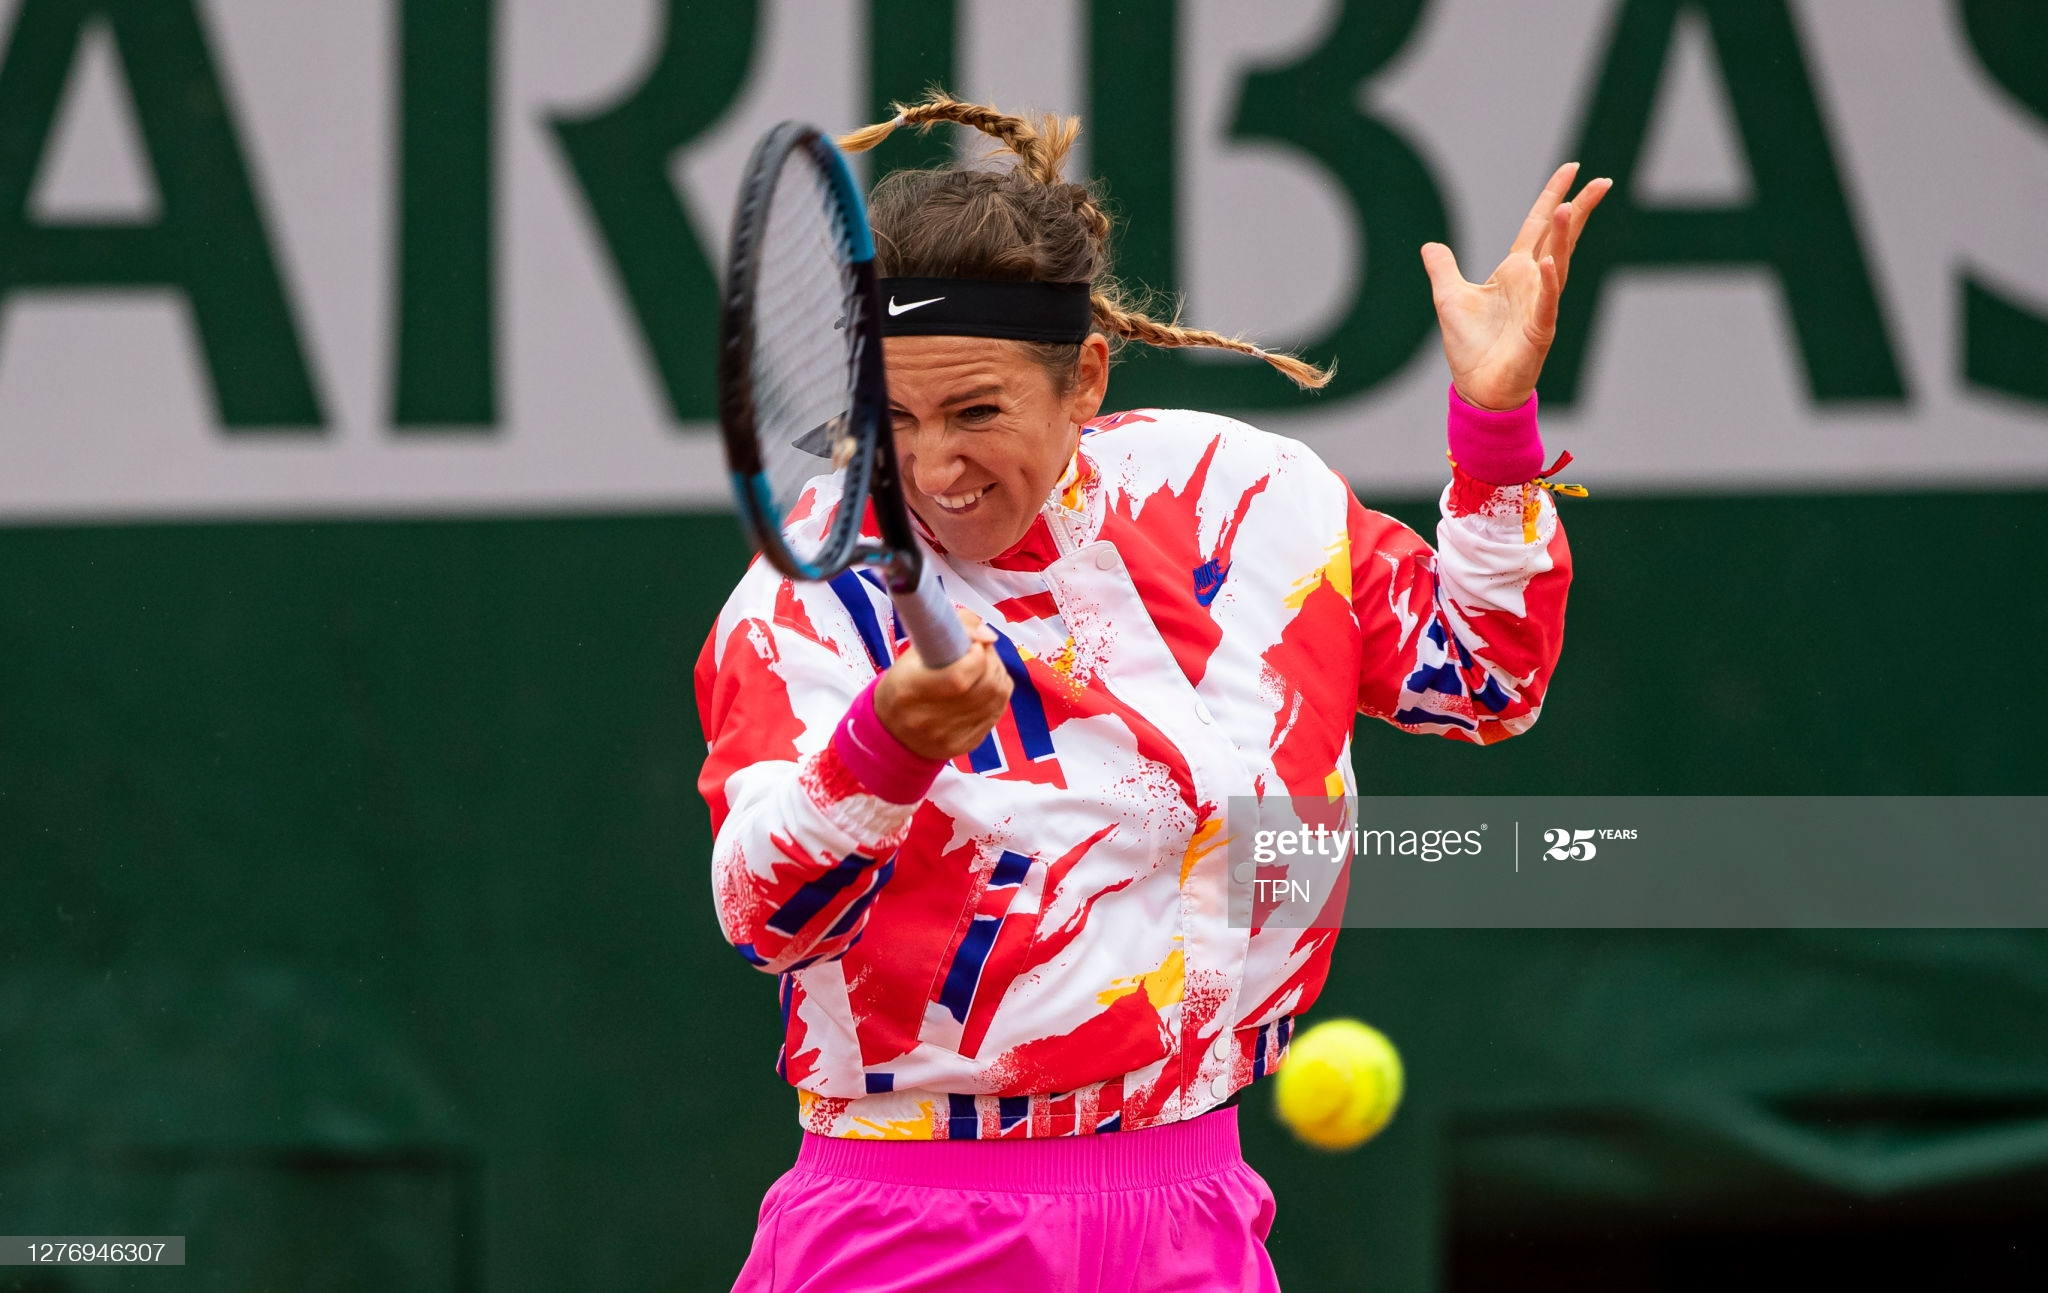 vika day one french open 2020